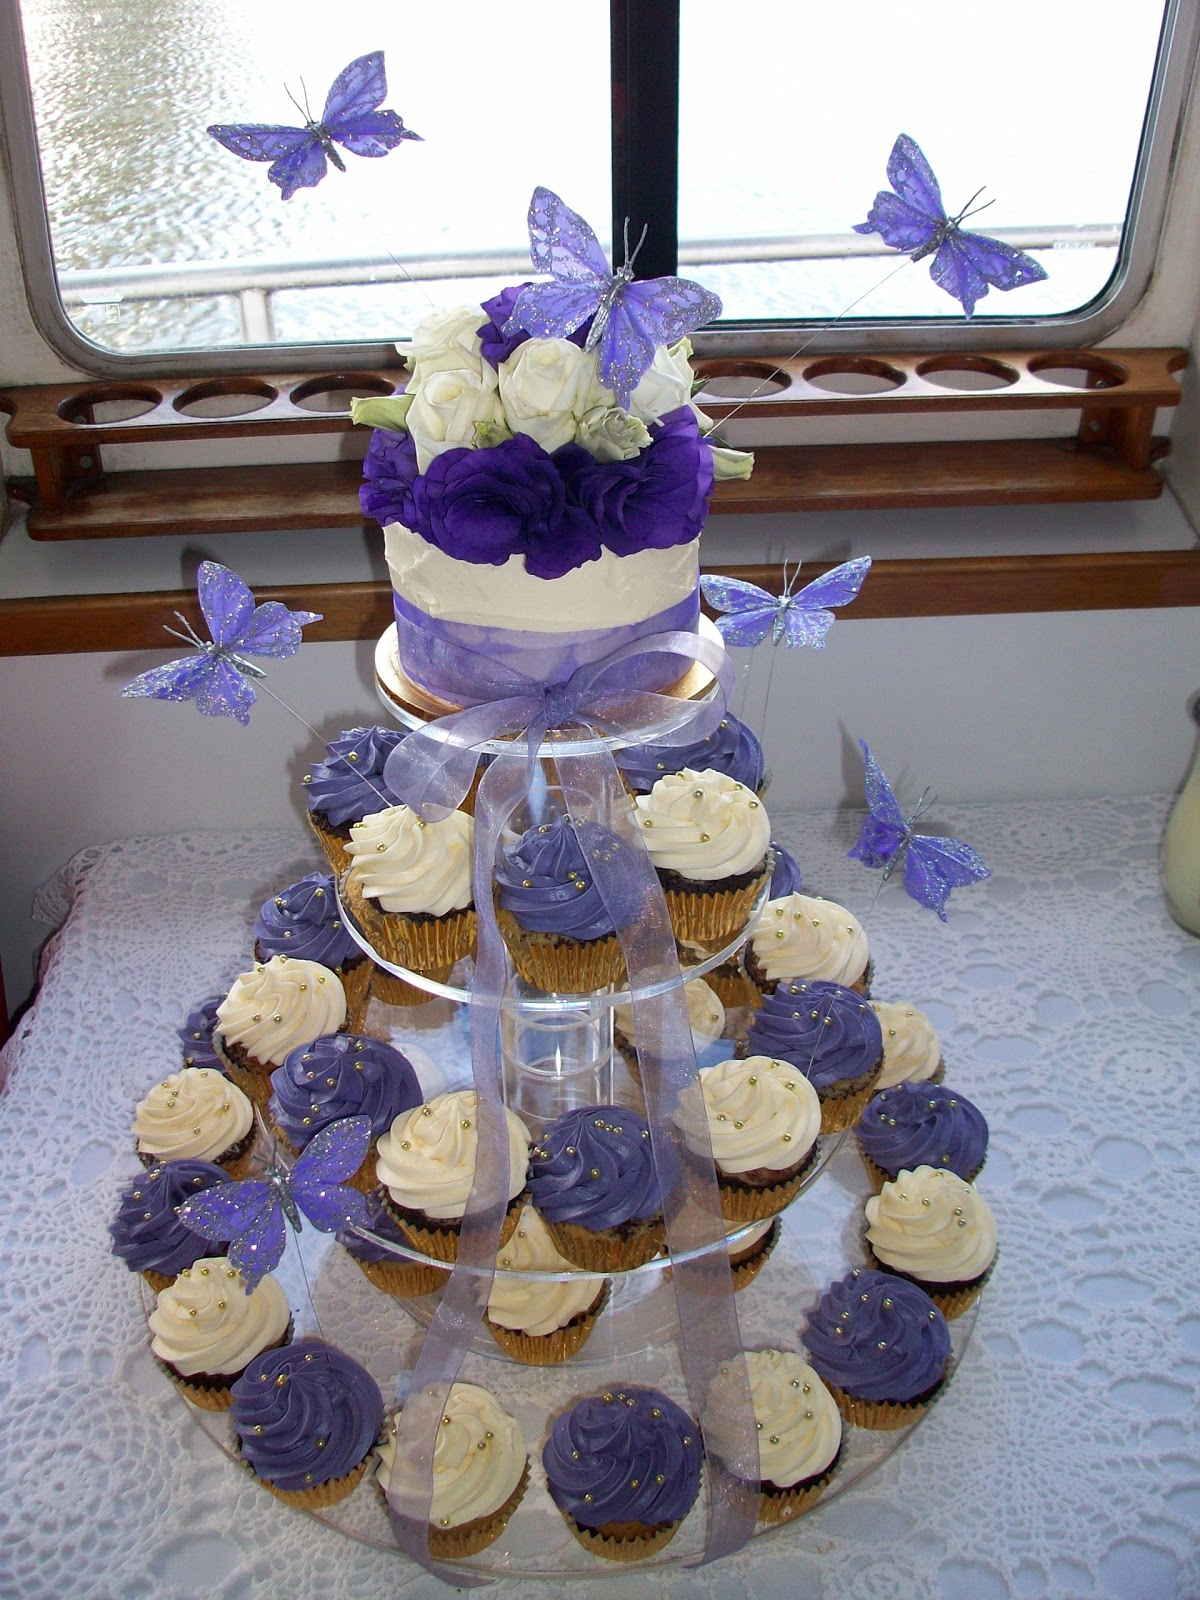 ... purple color tones source purple butterflies theme wedding cupcakes